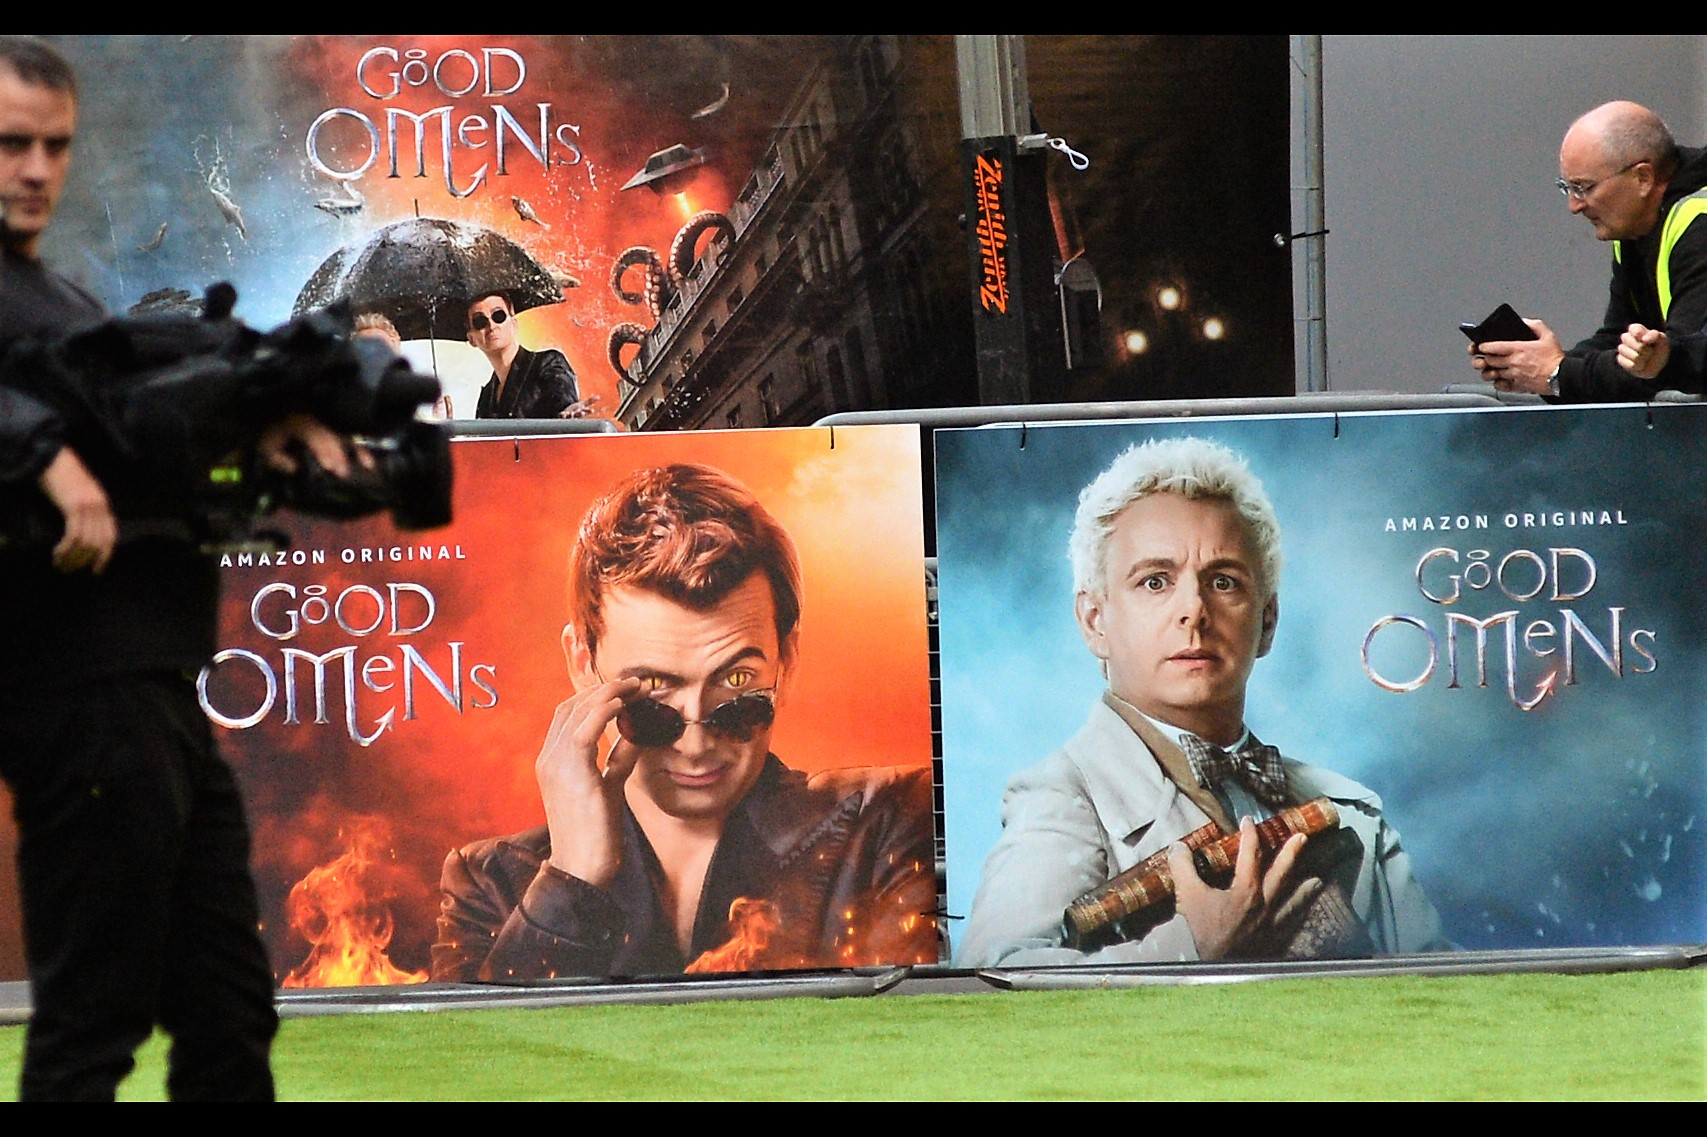 Quite honestly, I wouldn't buy a used car from either of these… It's 'Good Omens'!! I read the book in High School, which might either indicate my age or my intellectual prowess (given I've done 500 premieres over 10+ years without monetising the hobby, it's probably a little bit of both)